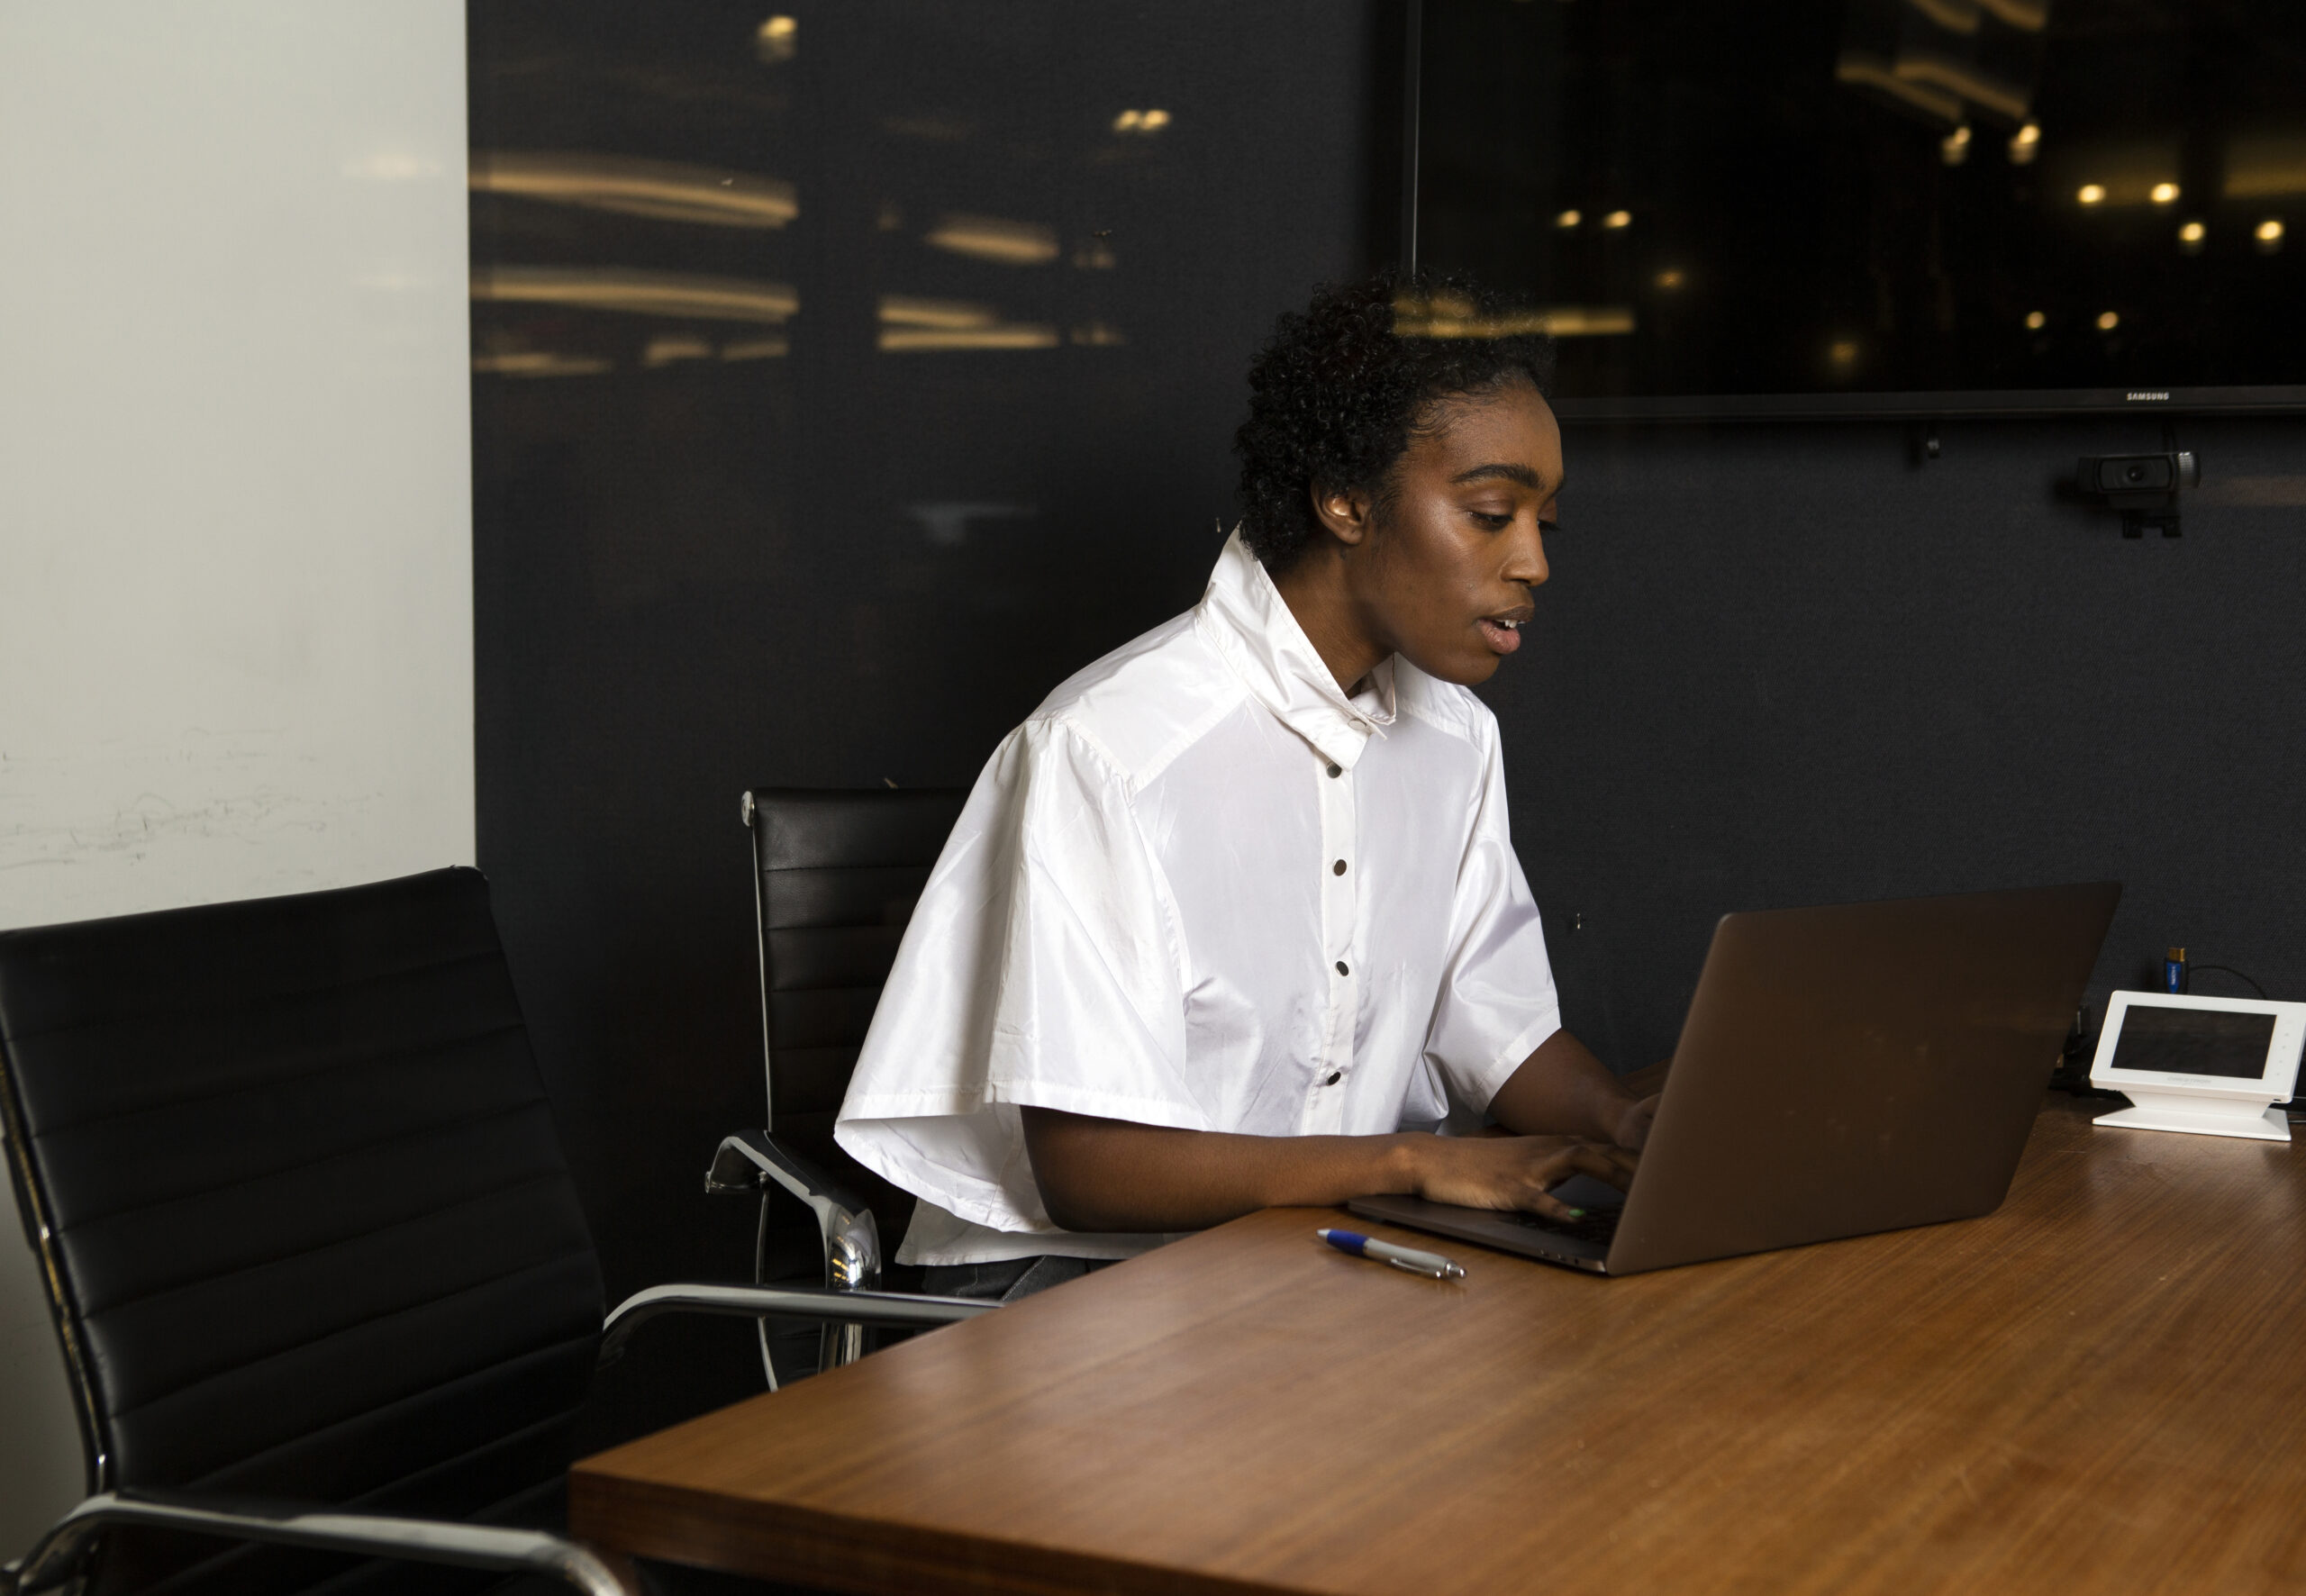 A non-binary person using a laptop at work.